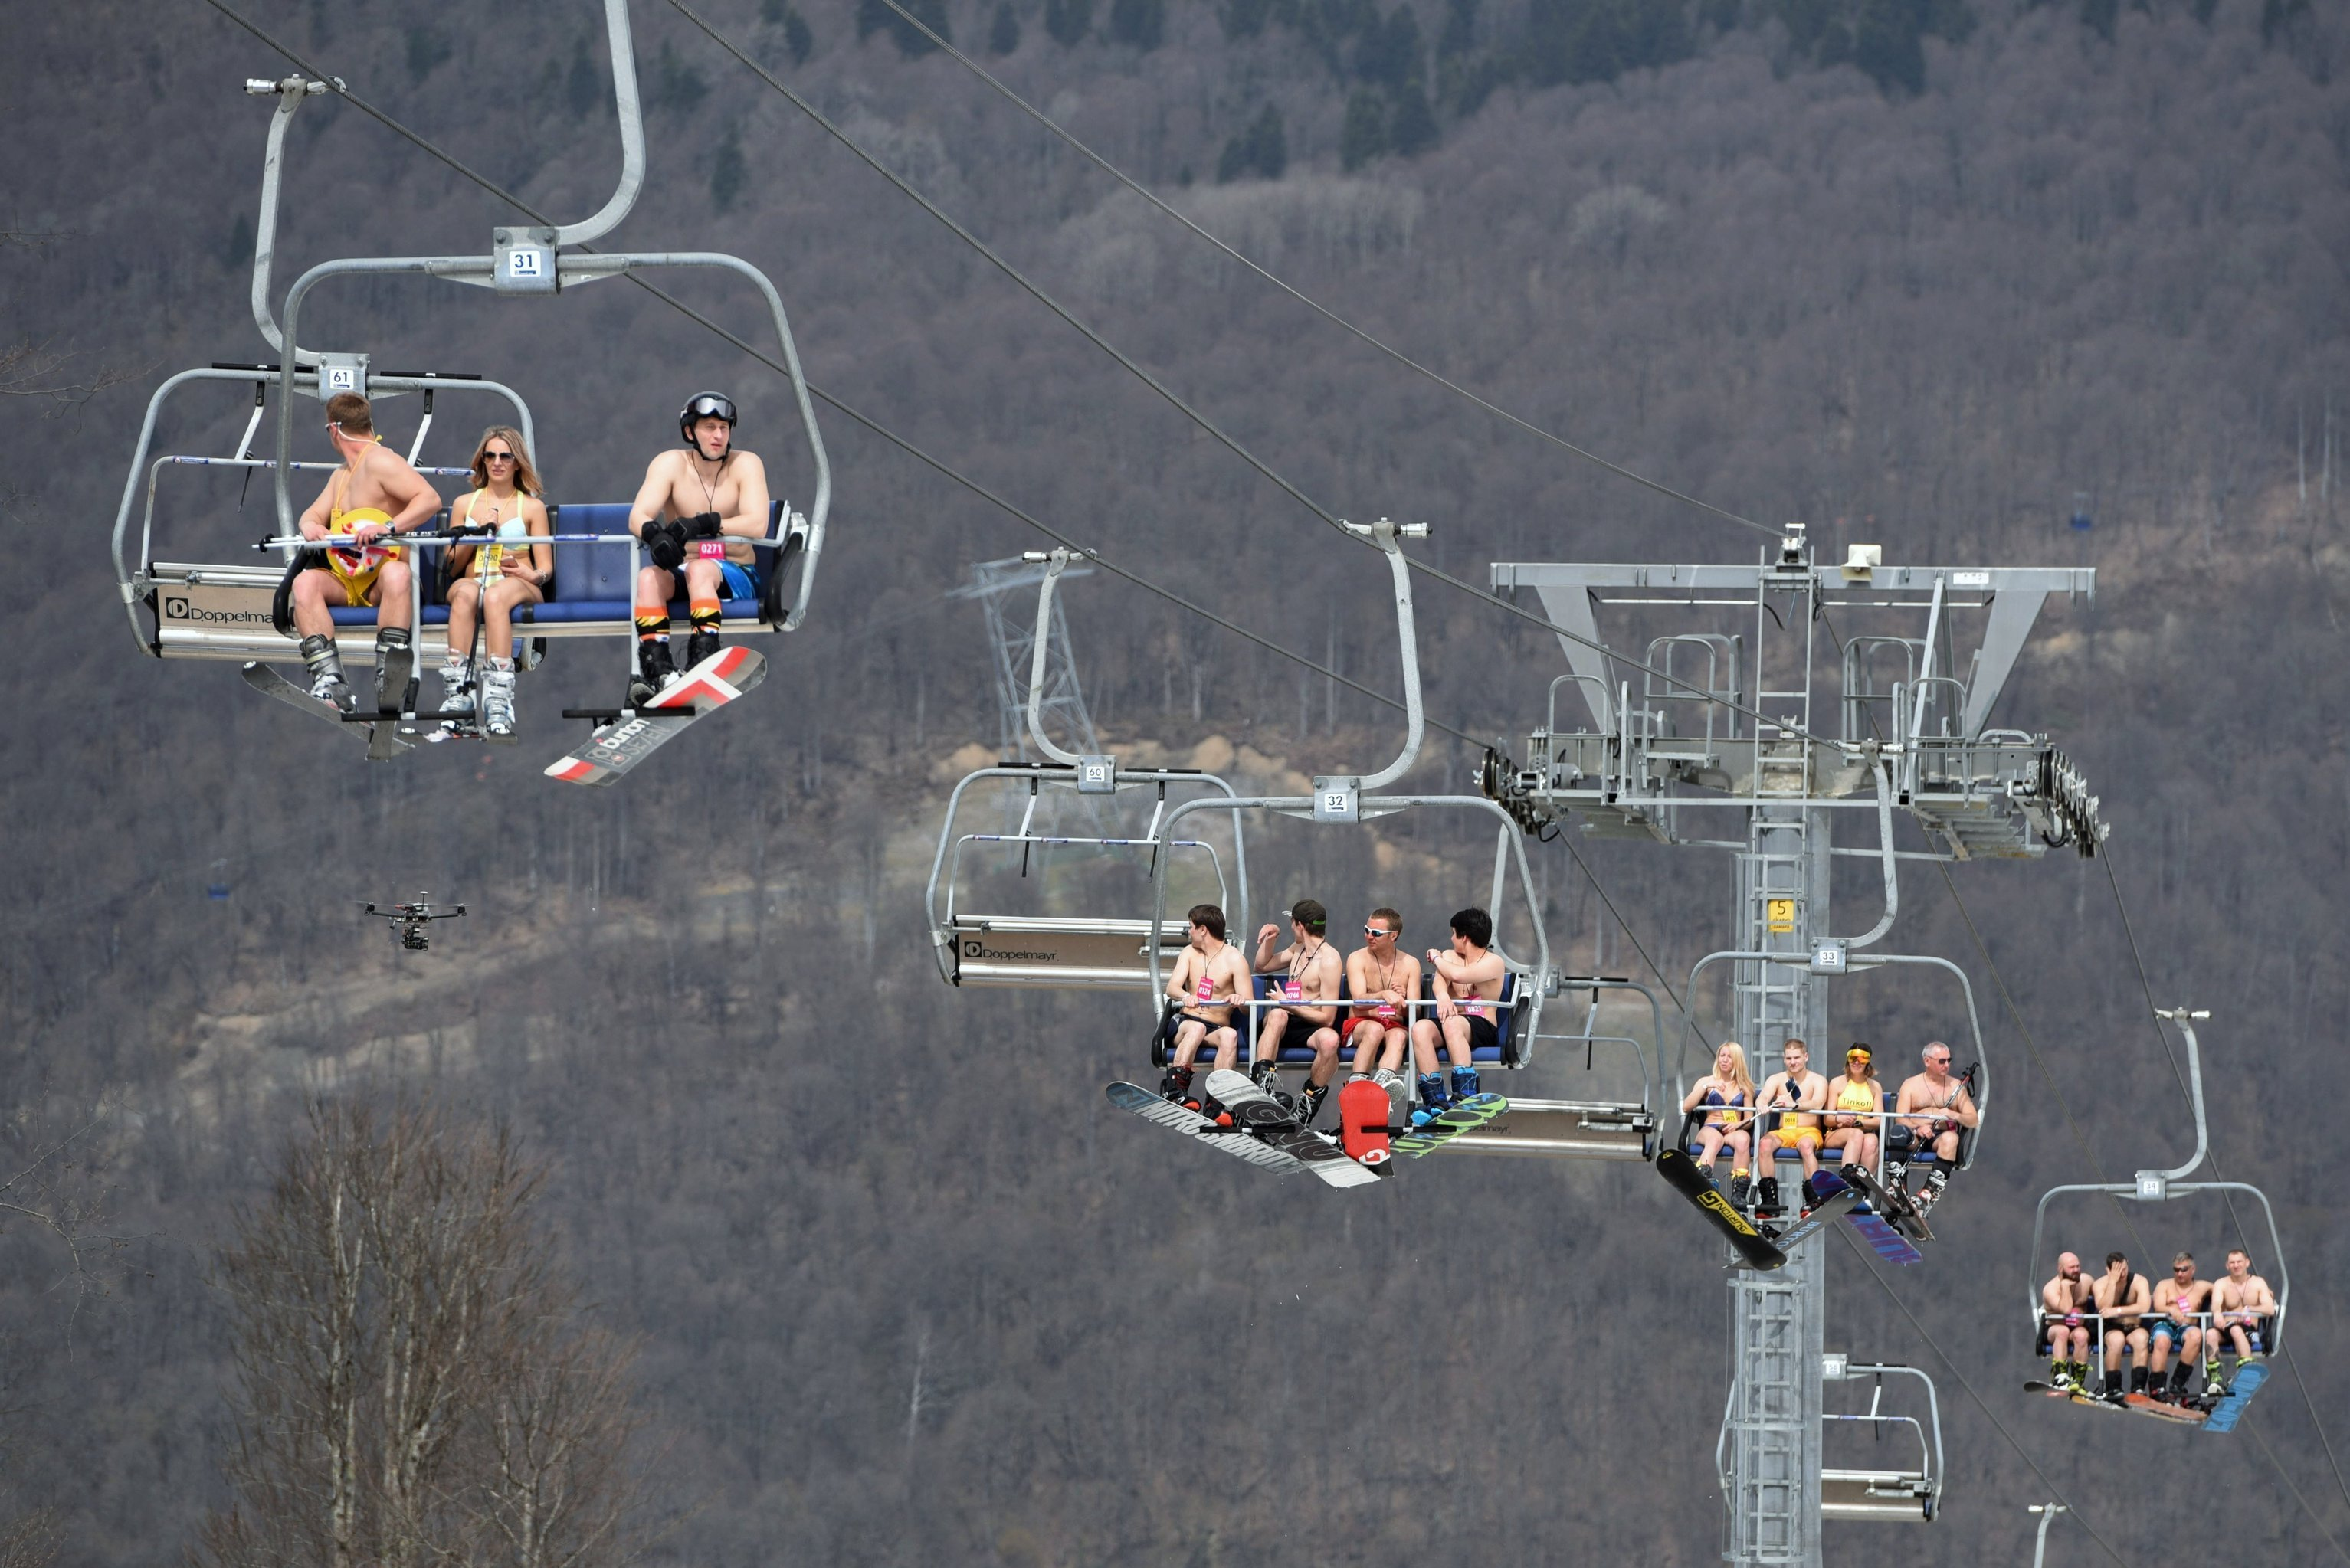 1000 Skiers attempt to set world record in bikinis